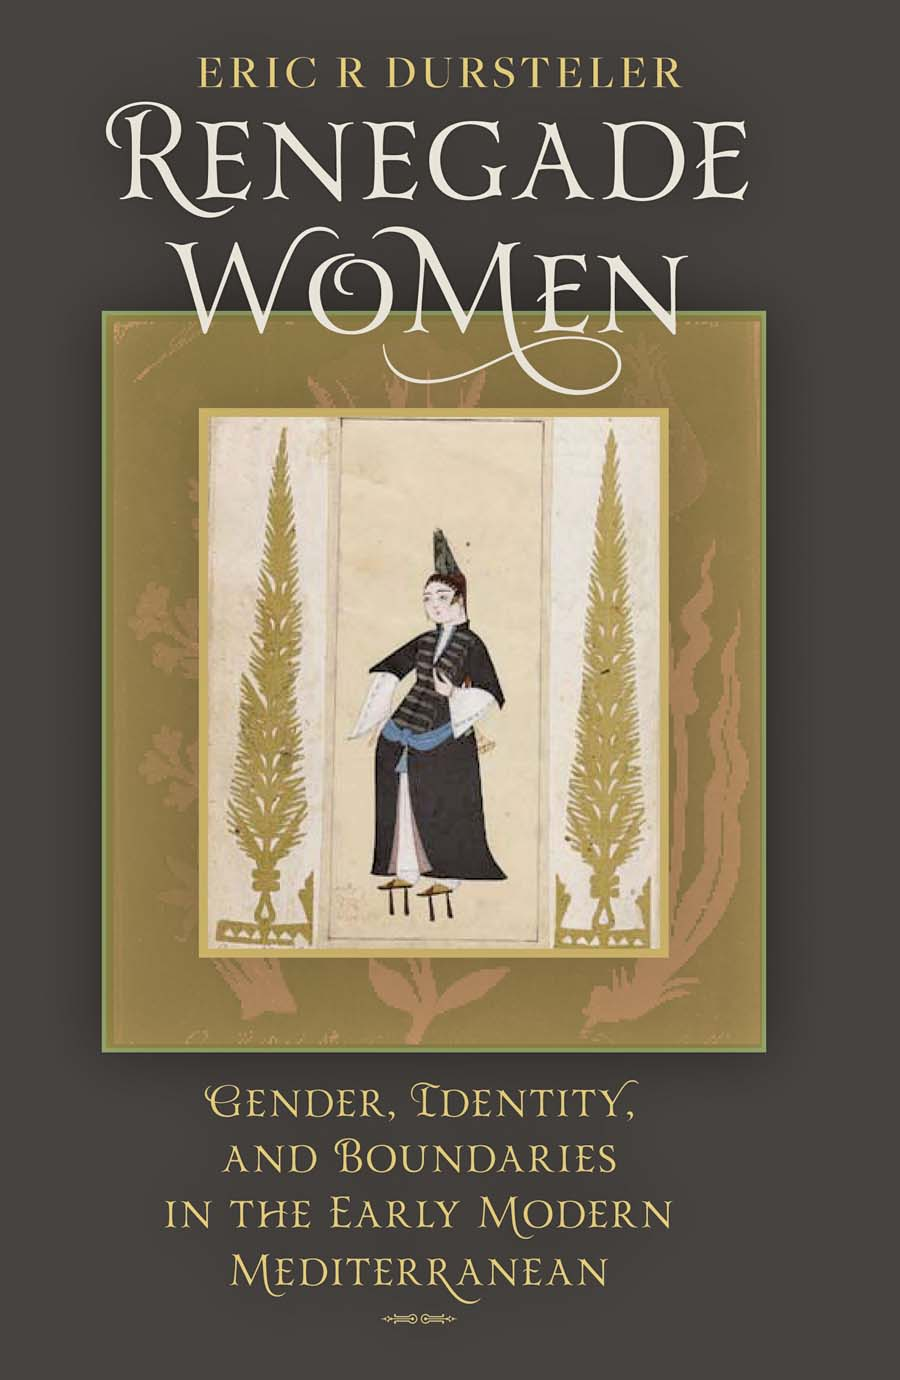 Renegade Women – Gender, Identity, and Boundaries in the Early Modern Mediterranean uzma rehman sufi shrines and identity construction in pakistan